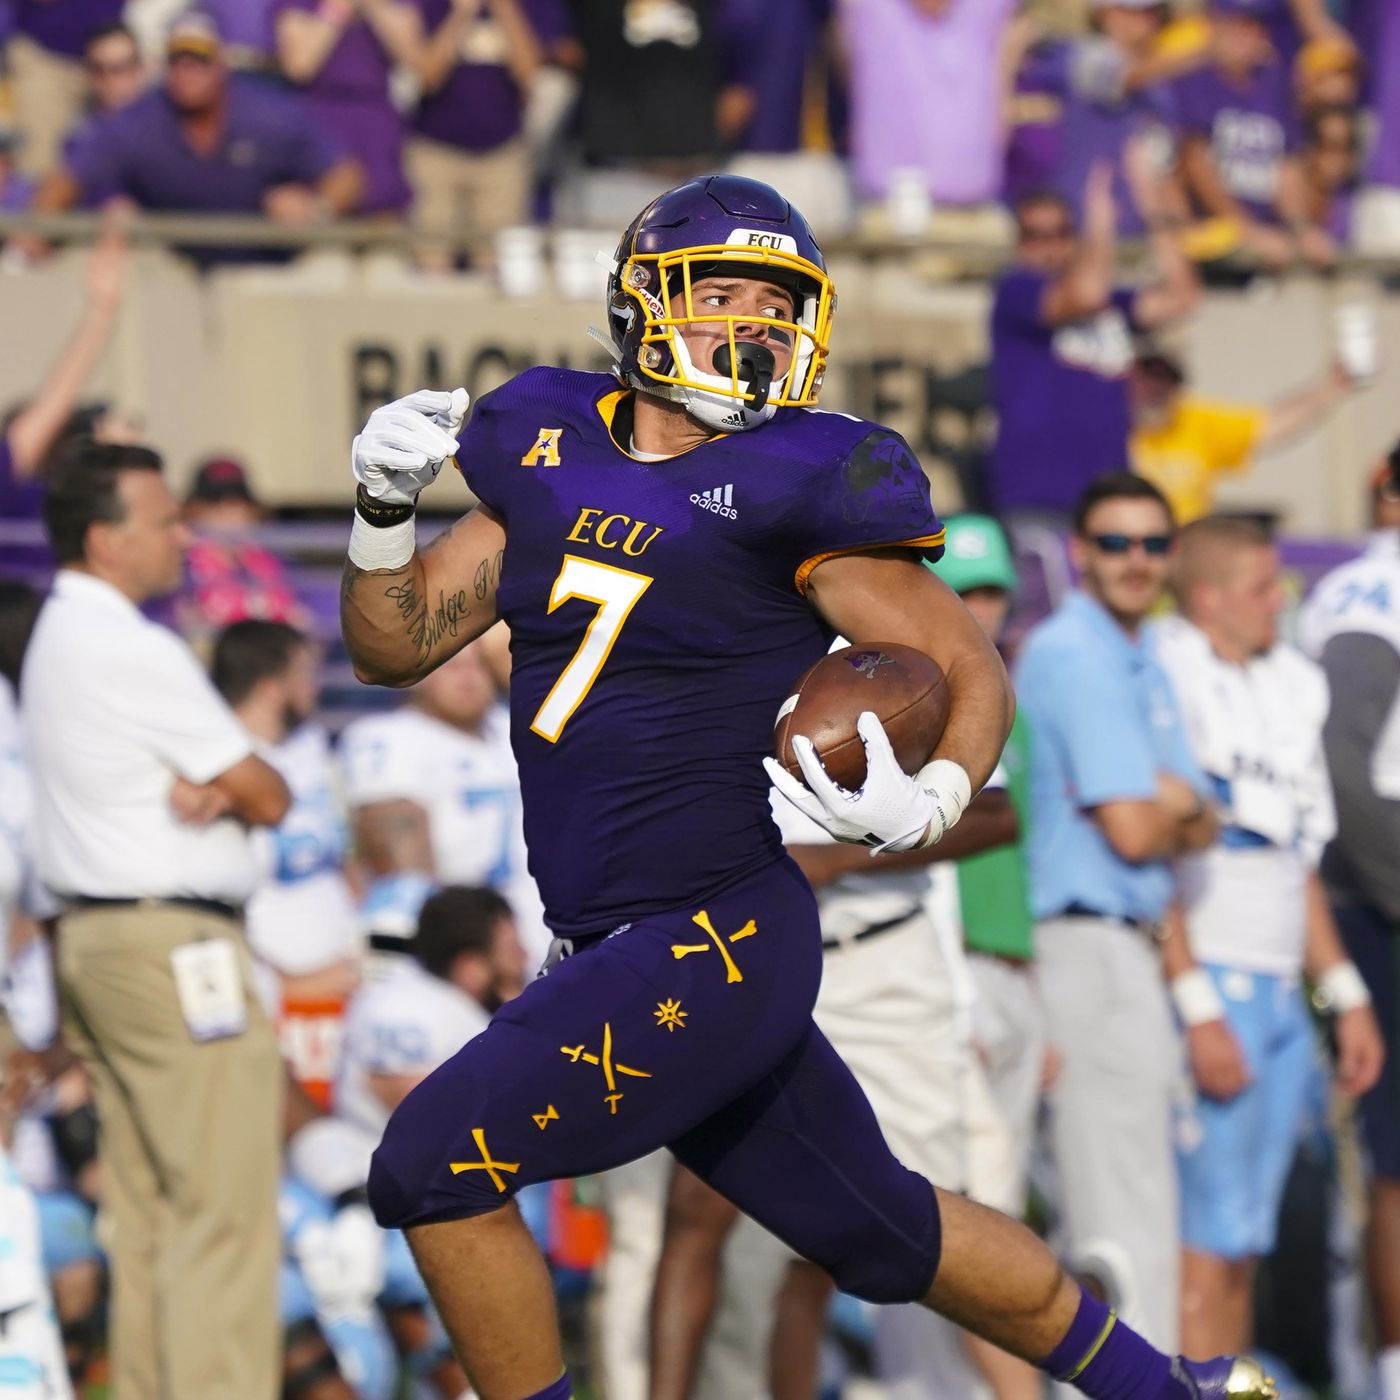 outlet store ed0e7 43ad1 NC State Football Sets Tentative Match-up with East Carolina ...